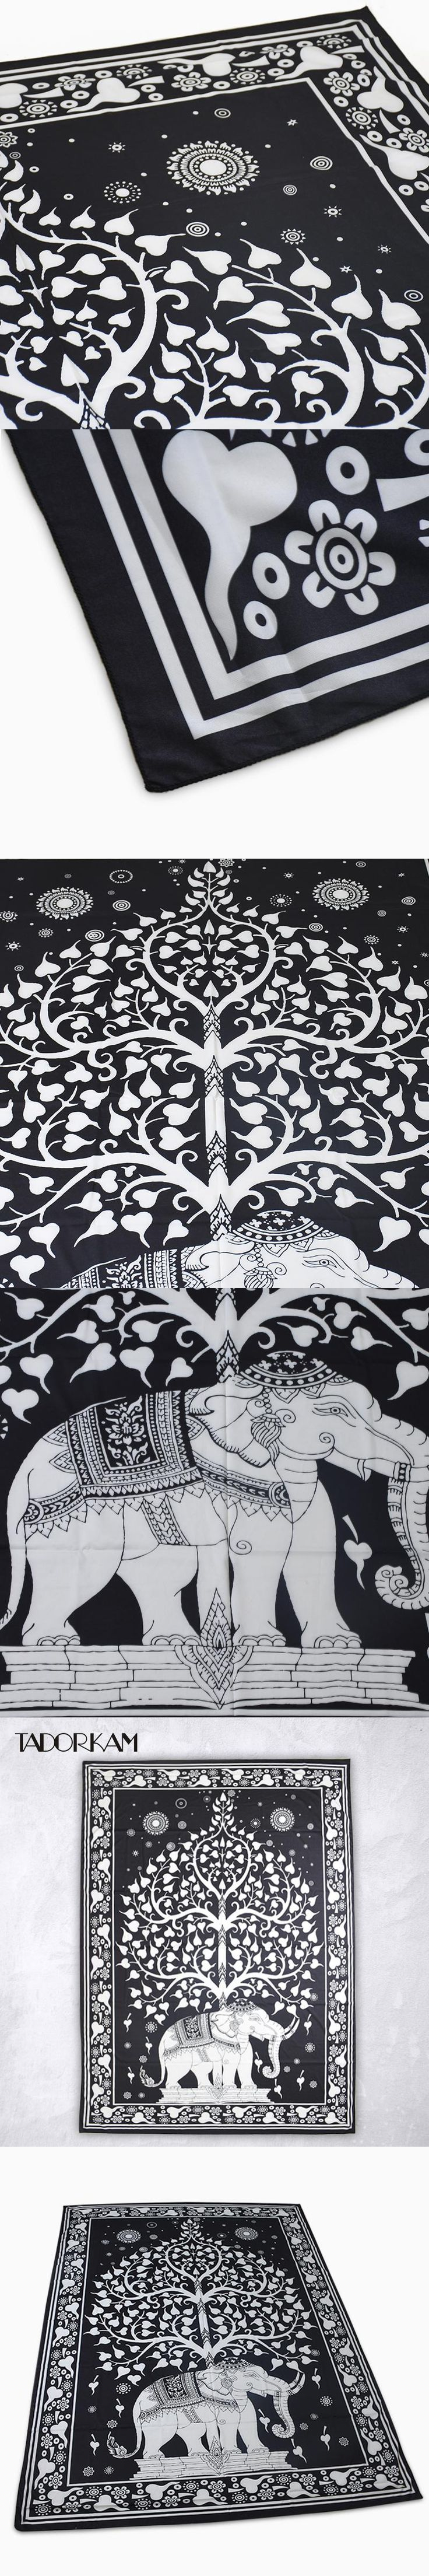 White Black Elephant Mandala Tapestry Indian Bohemian Tapestry Wall Hanging Mandala Bedspread Beach Shawl Yoga Mats Party Decor